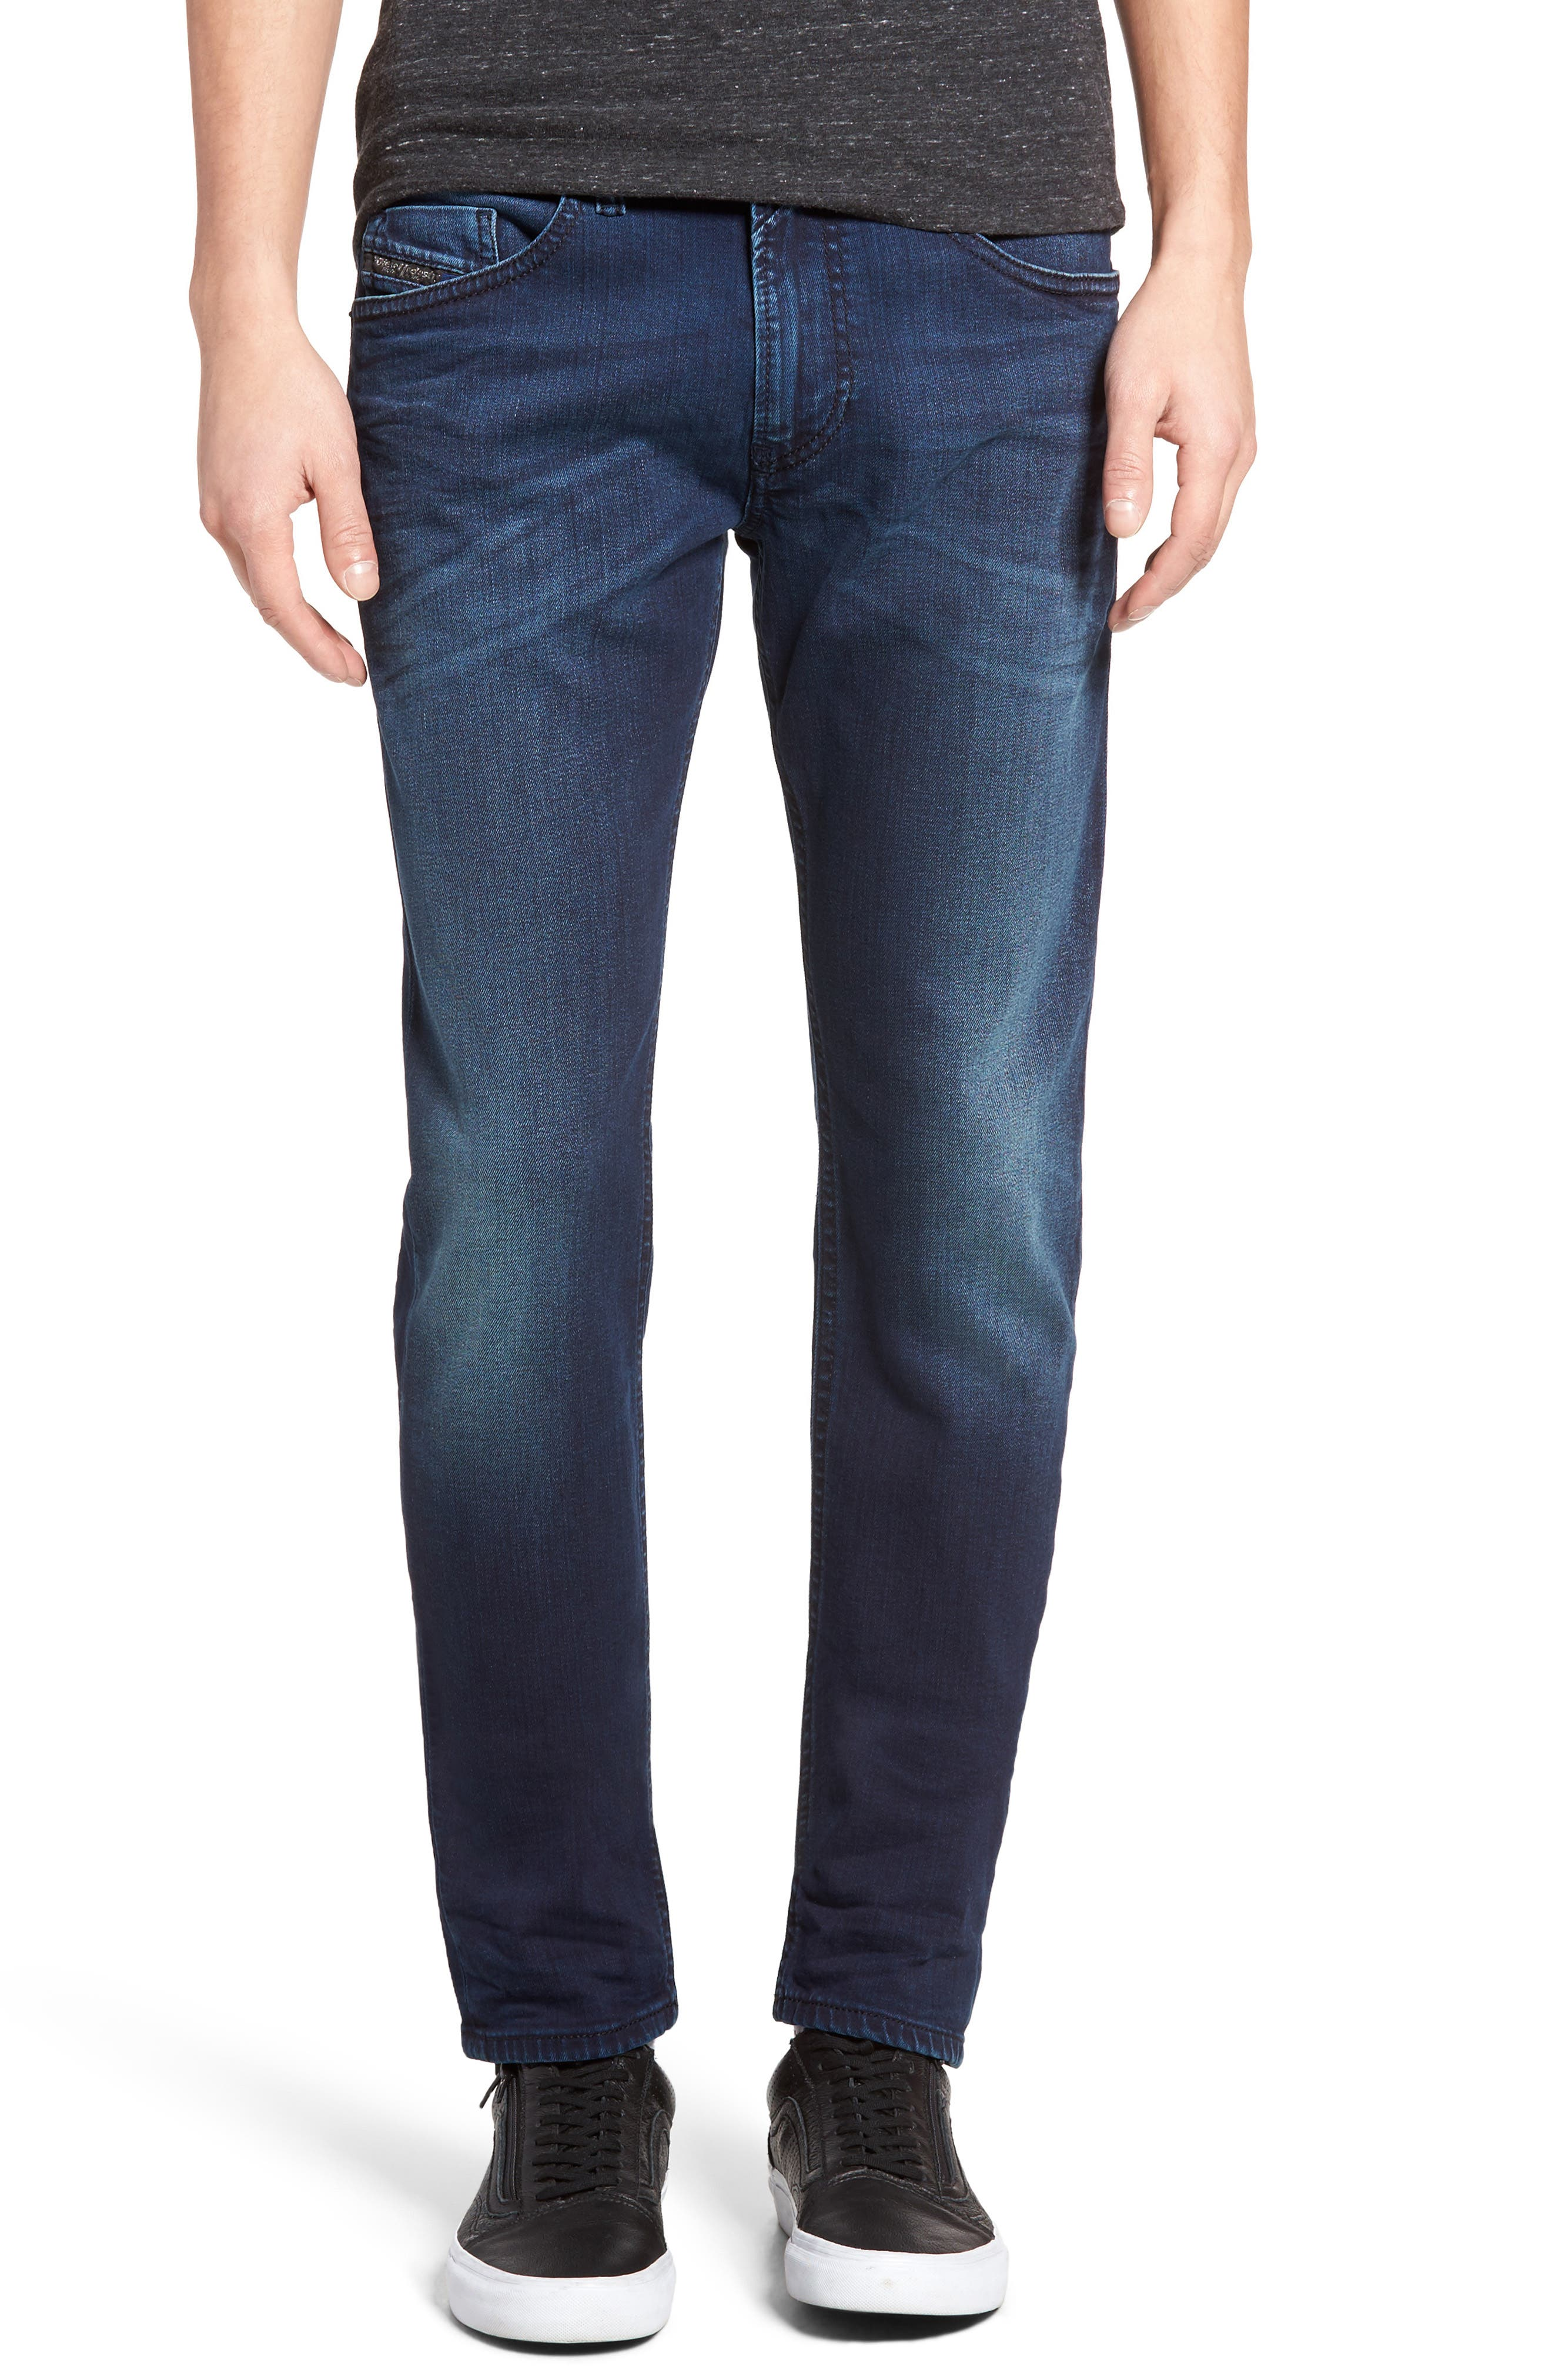 Thommer Skinny Fit Jeans,                         Main,                         color, 084Bv